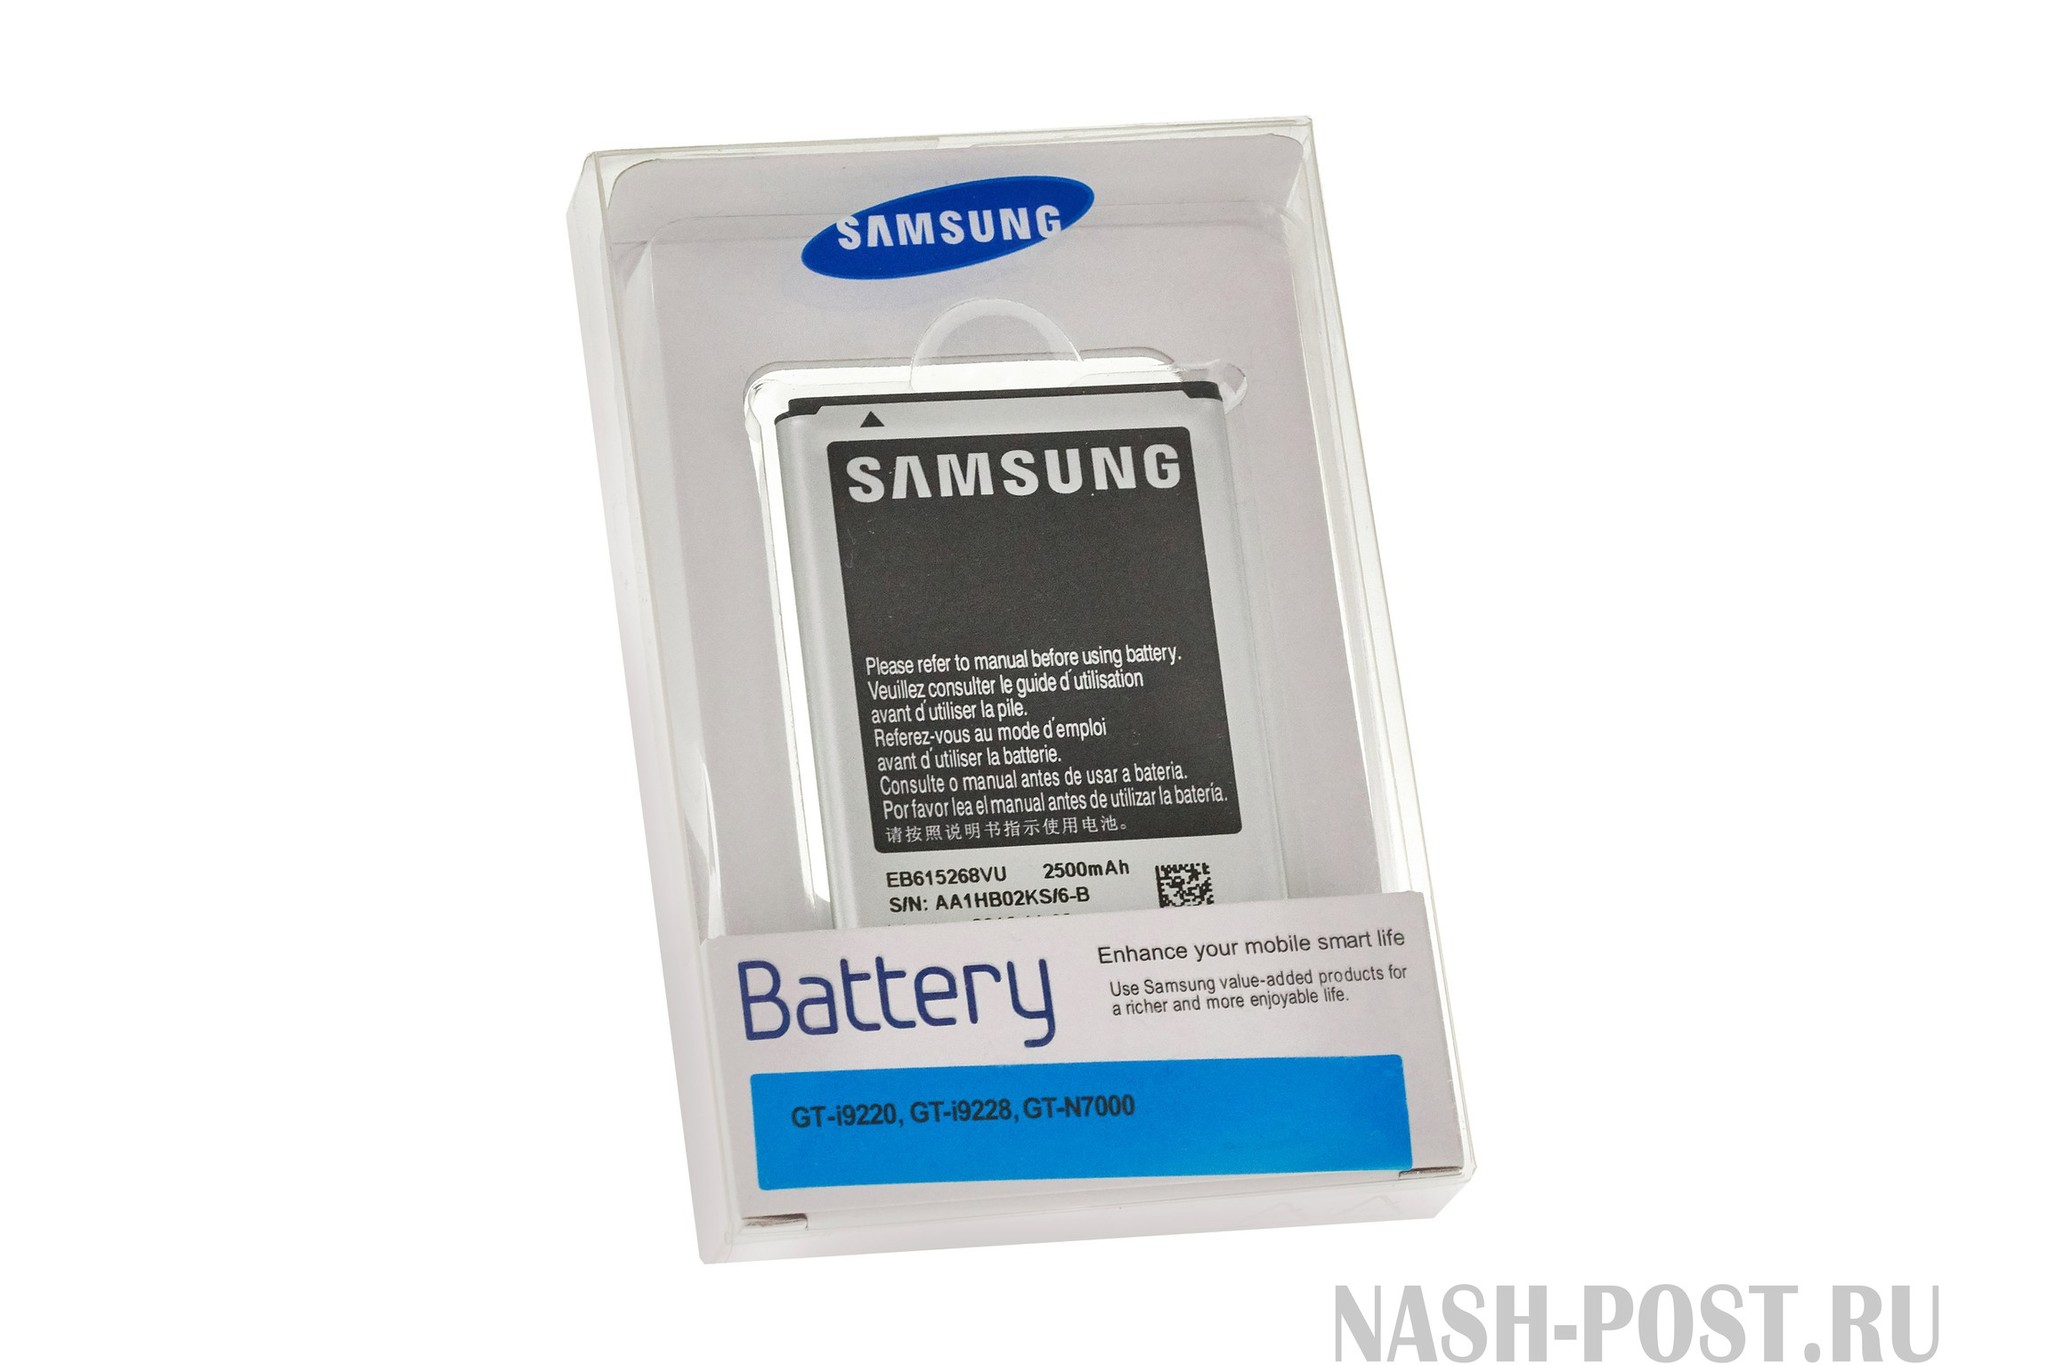 Samsung battery SAMSUNG for i9220 sn117.jpg